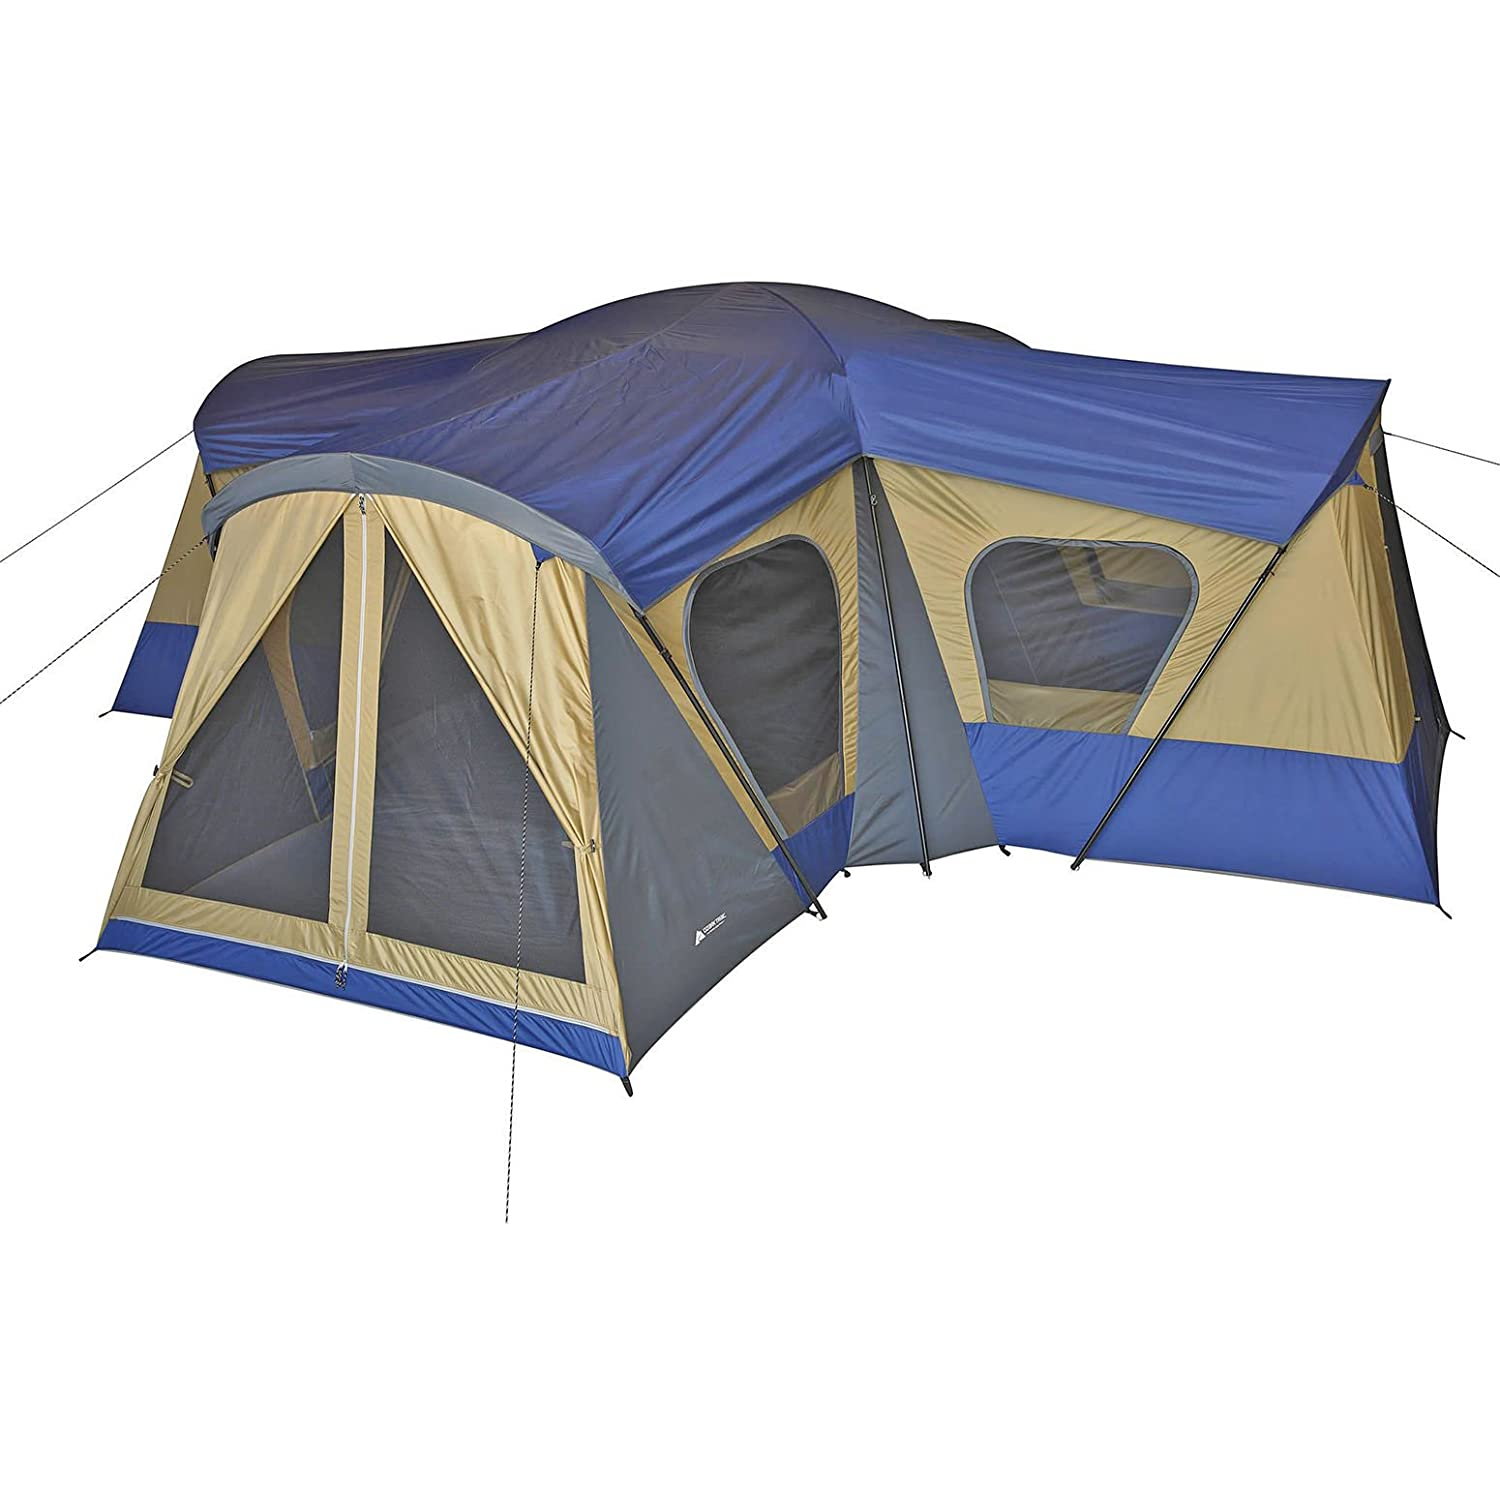 Etonnant Amazon.com : Ozark Trail Base Camp 14 Person Cabin Tent (Blue) : Sports U0026  Outdoors